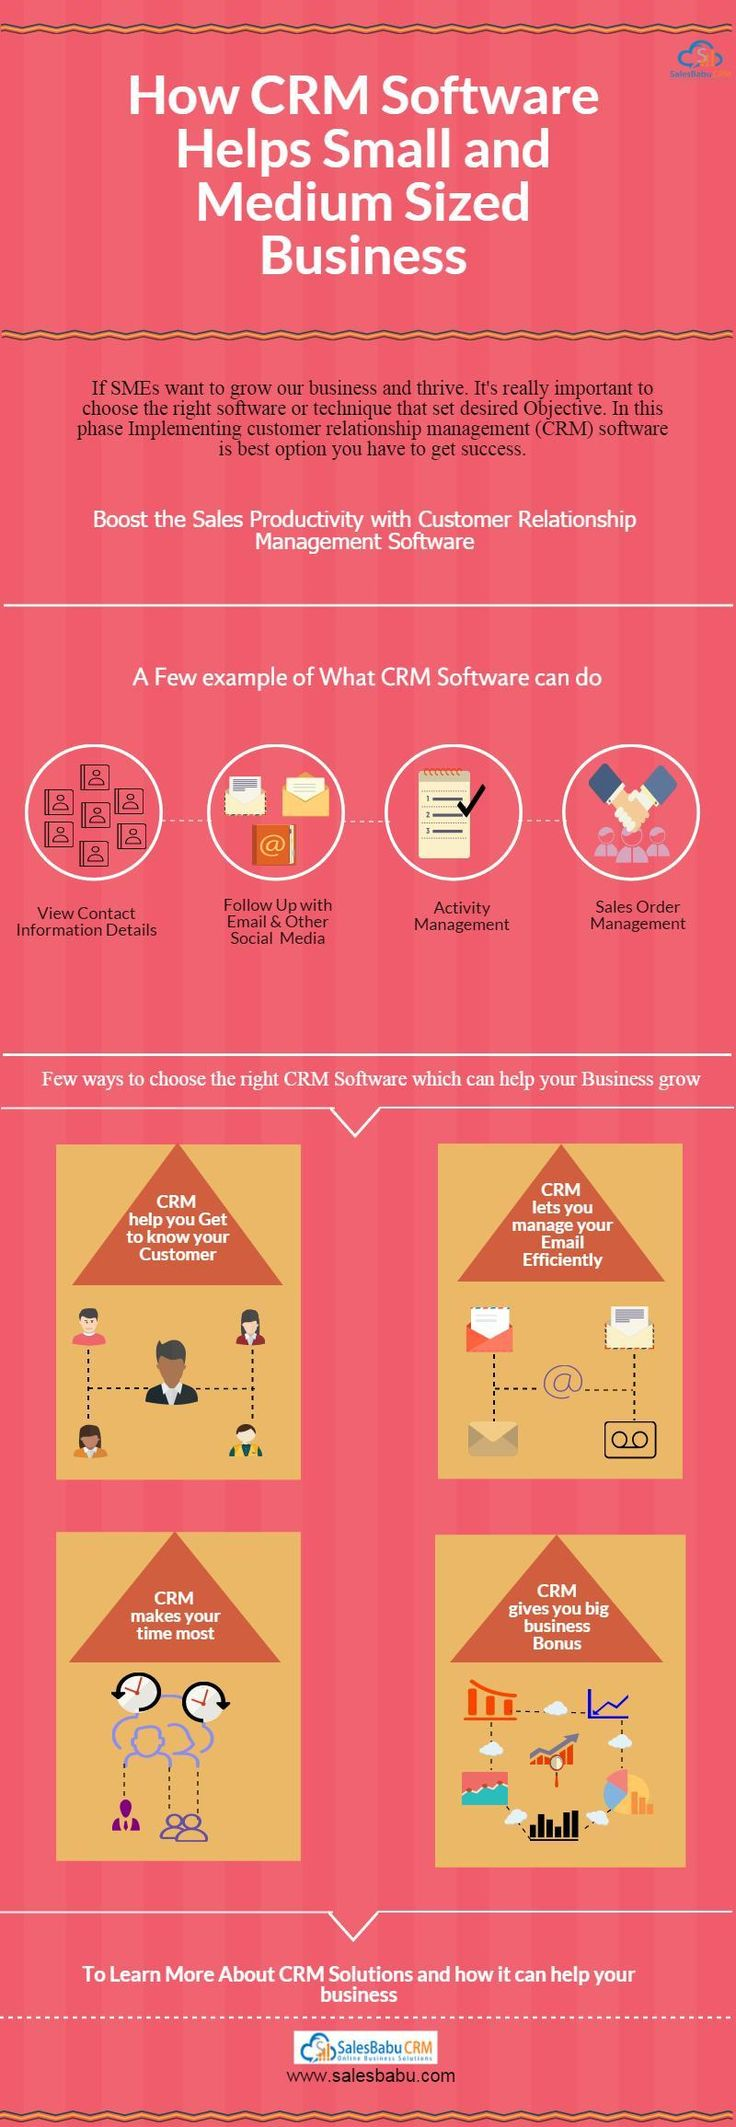 Infographic: What is #CRM Software & How it can be helpful for Small and medium sized #Business.